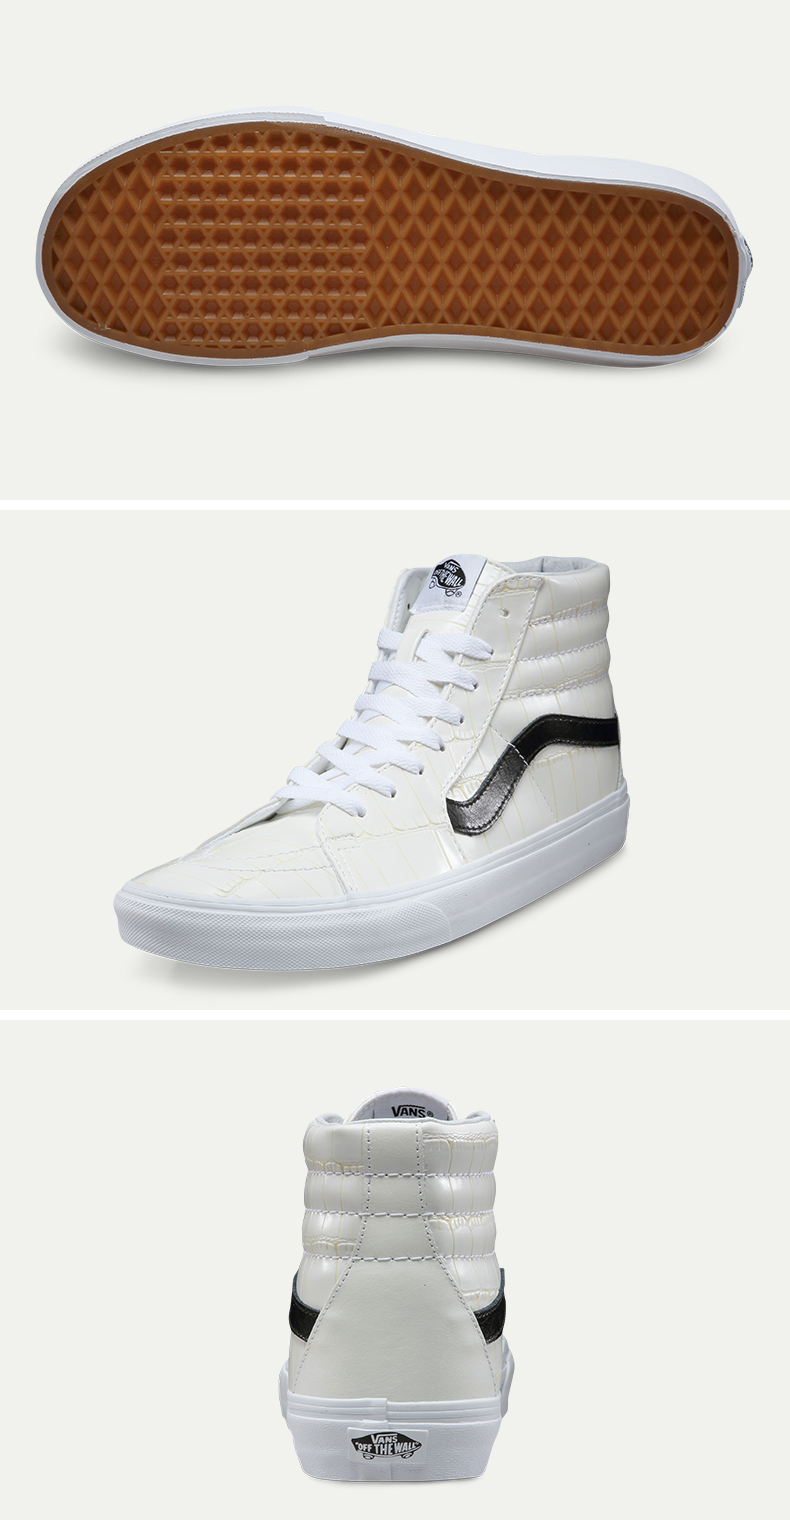 Original Vans Classic Vans Men's and Women's Unisex Sk8-Hi Skateboarding Shoes Sports Shoes Sneakers free shipping